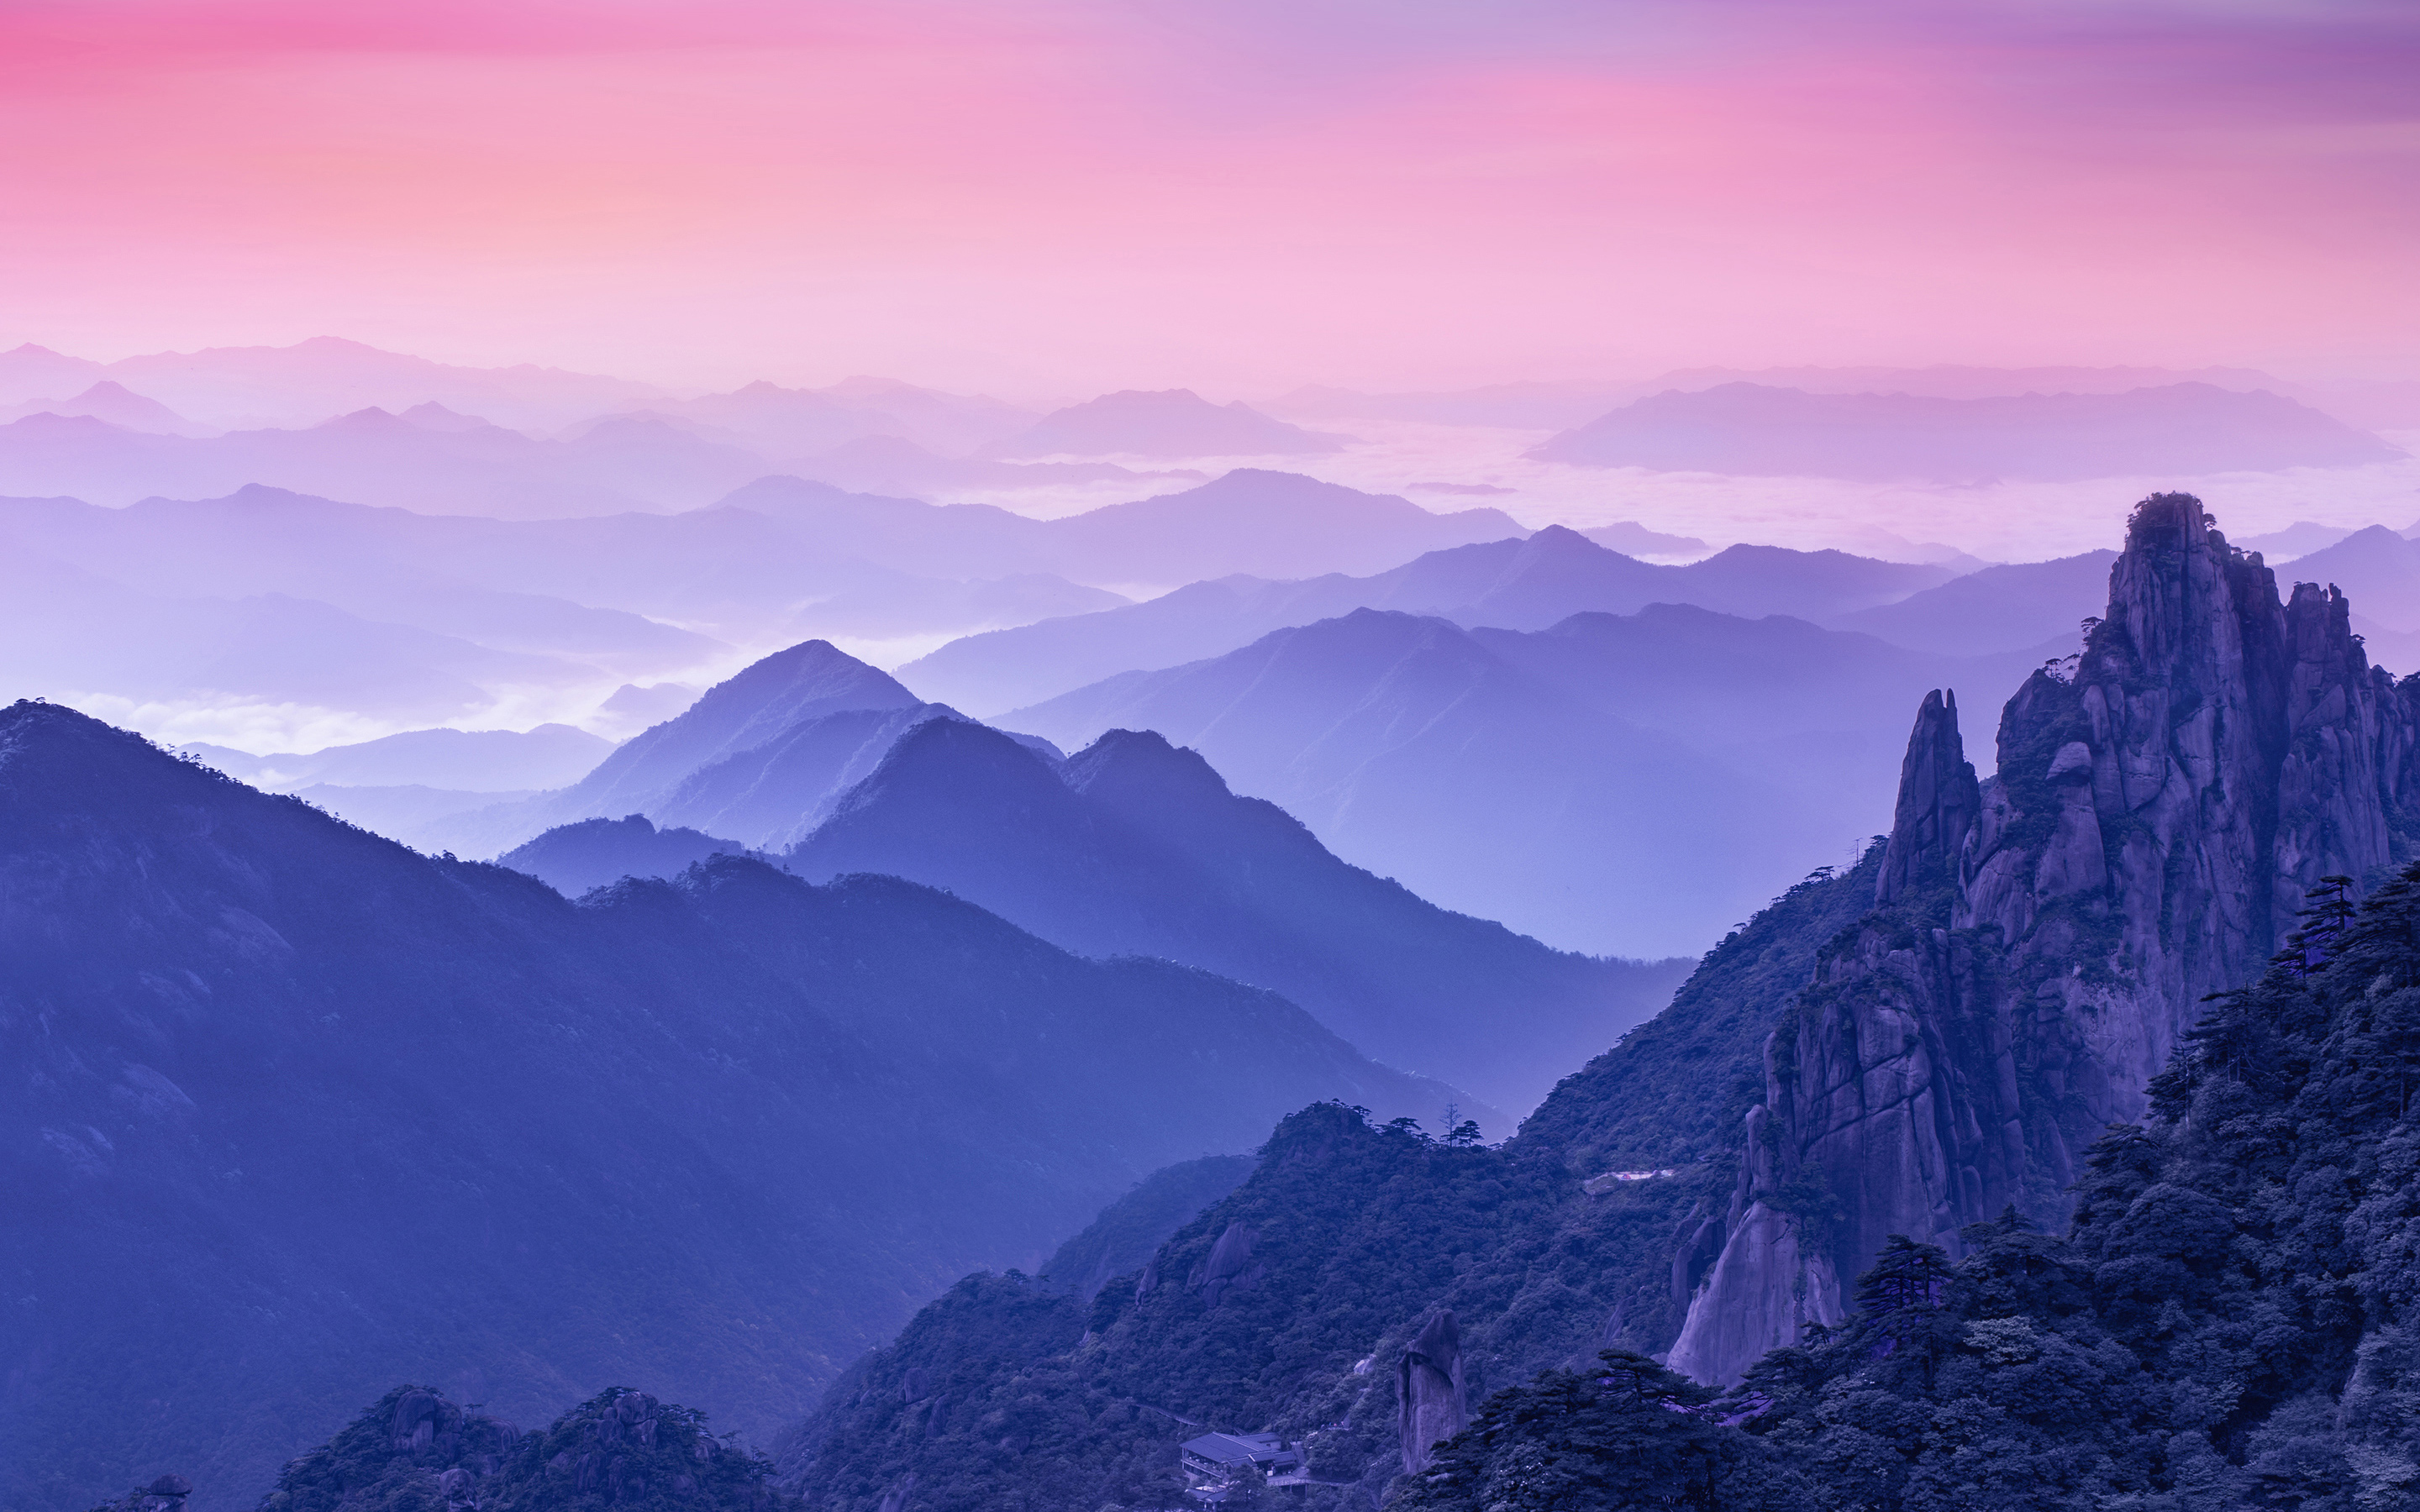 Foggy Morning Mountains Wallpapers   HD Wallpapers